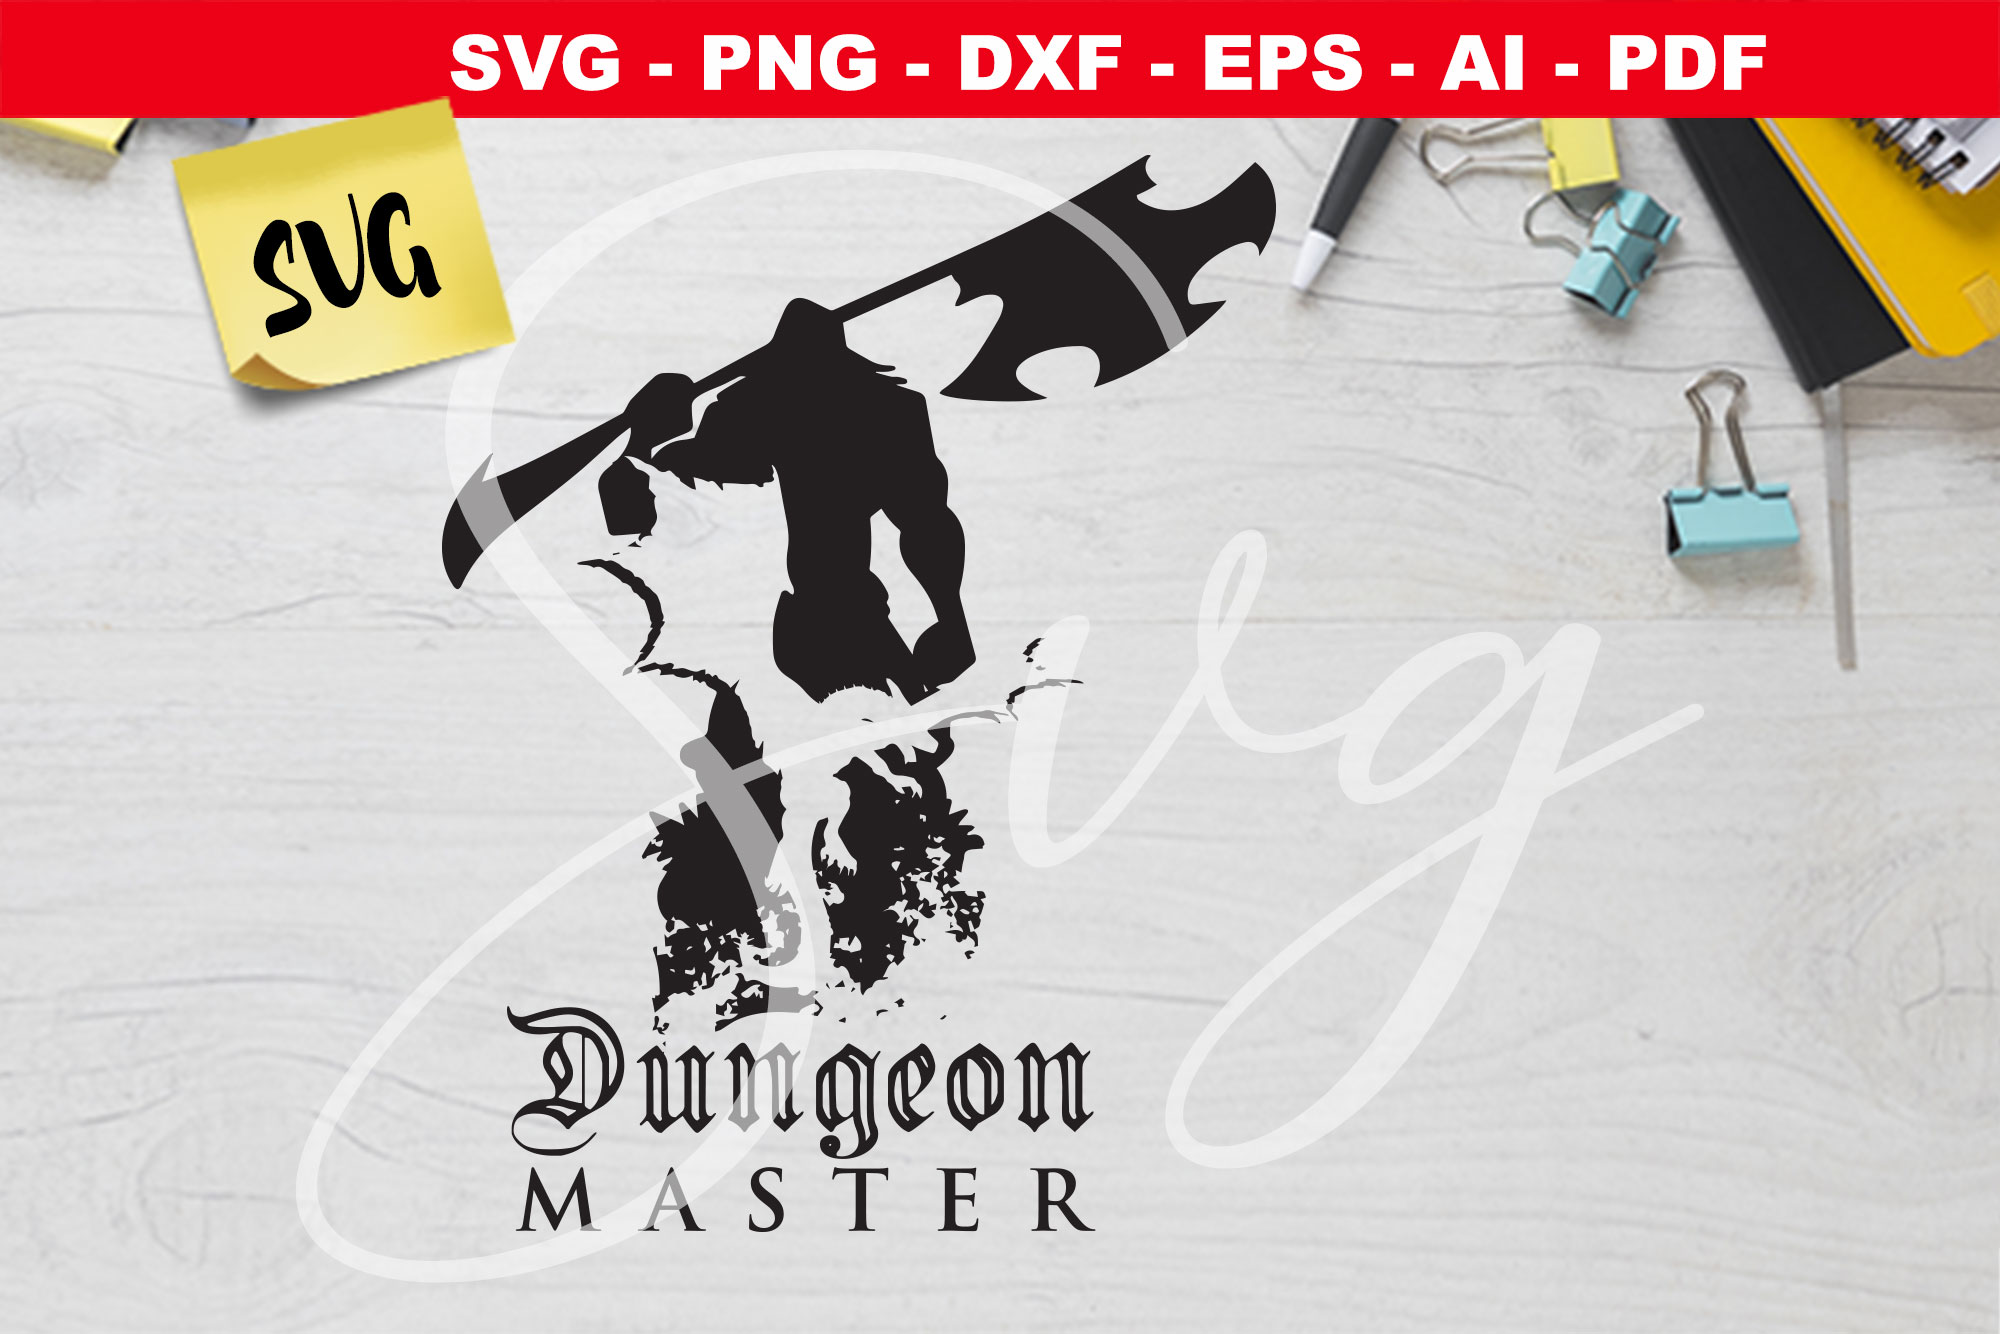 Dungeon Master, Barbarian and Dragon SVG File